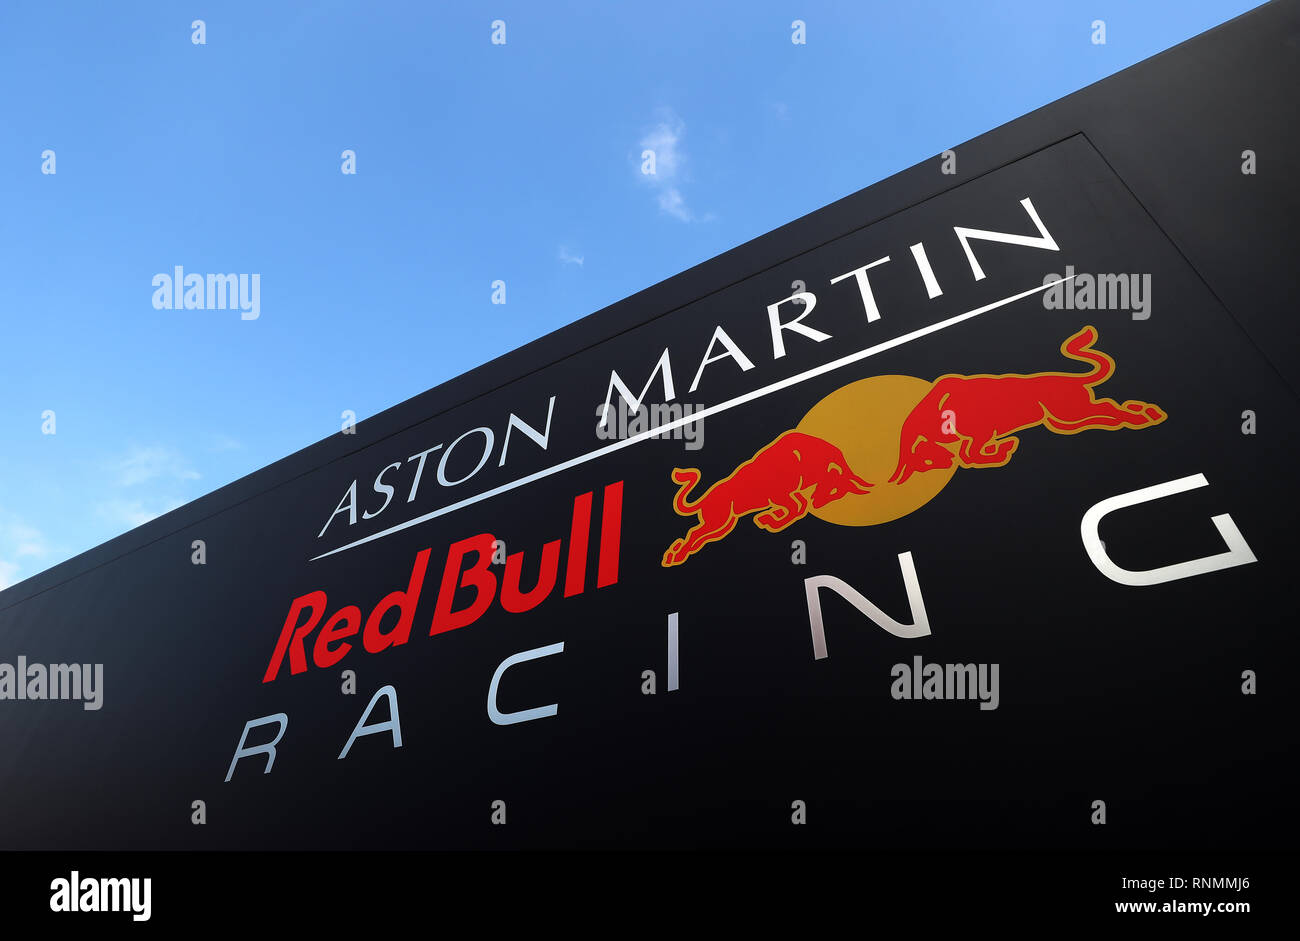 A View Of The Aston Martin Red Bull Racing Logo During Day Two Of Pre Season Testing At The Circuit De Barcelona Catalunya Stock Photo Alamy